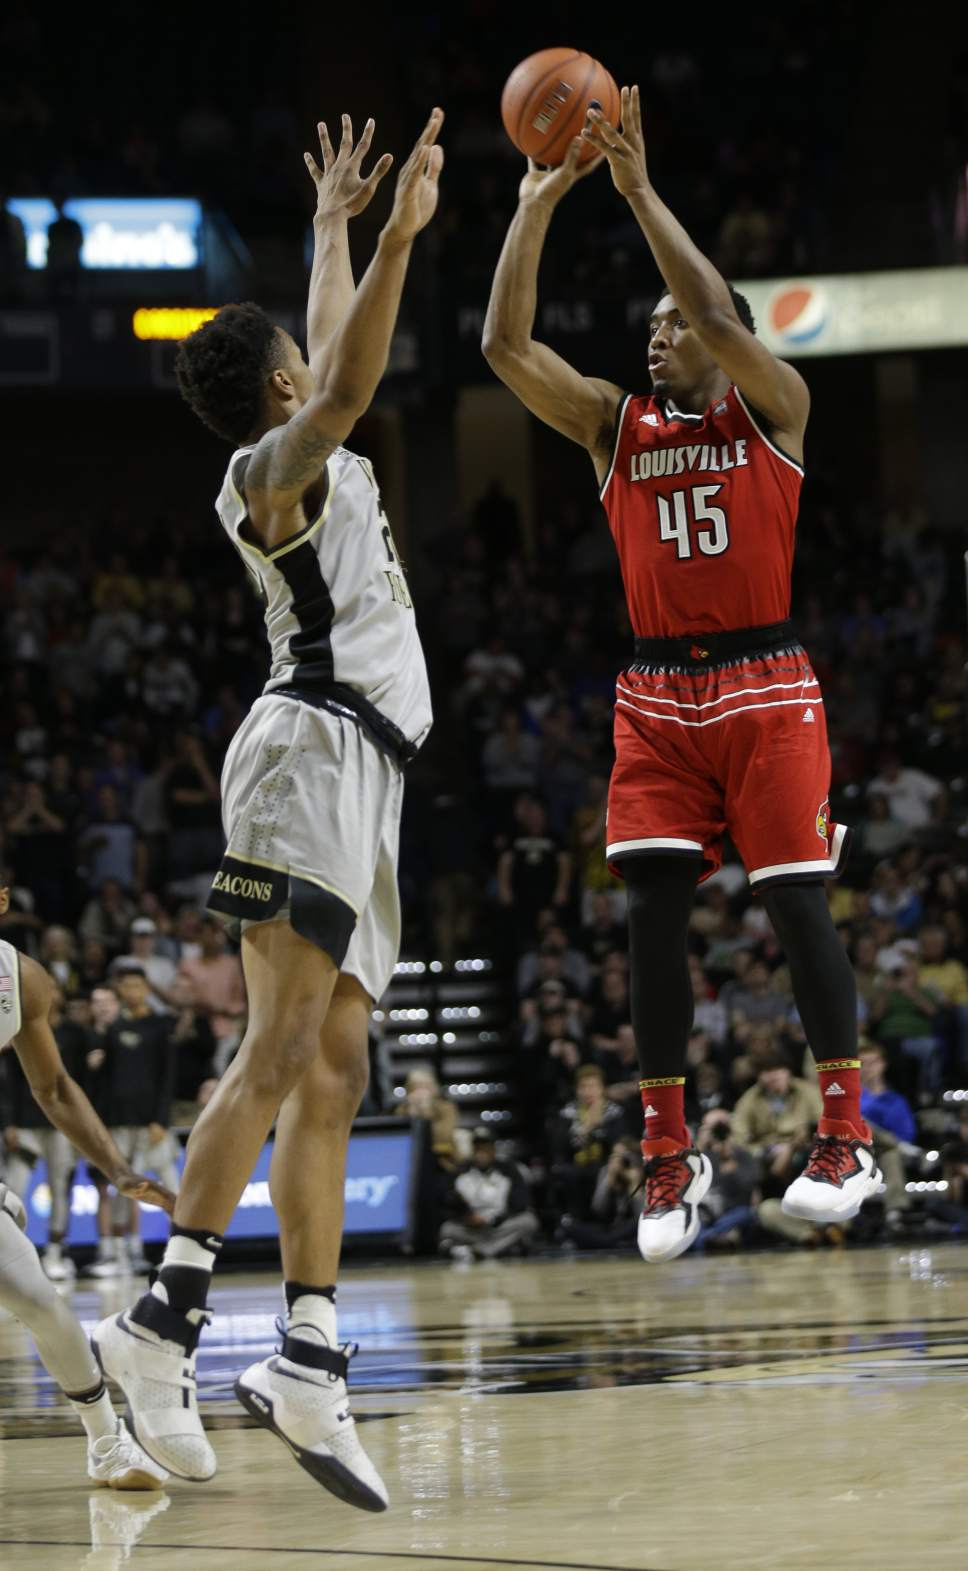 Louisville's Donovan Mitchell (45) shoots over Wake Forest's John Collins (20) in the second half of an NCAA college basketball game in Winston-Salem, N.C., Wednesday, March 1, 2017. Wake Forest won 88-81. (AP Photo/Chuck Burton)